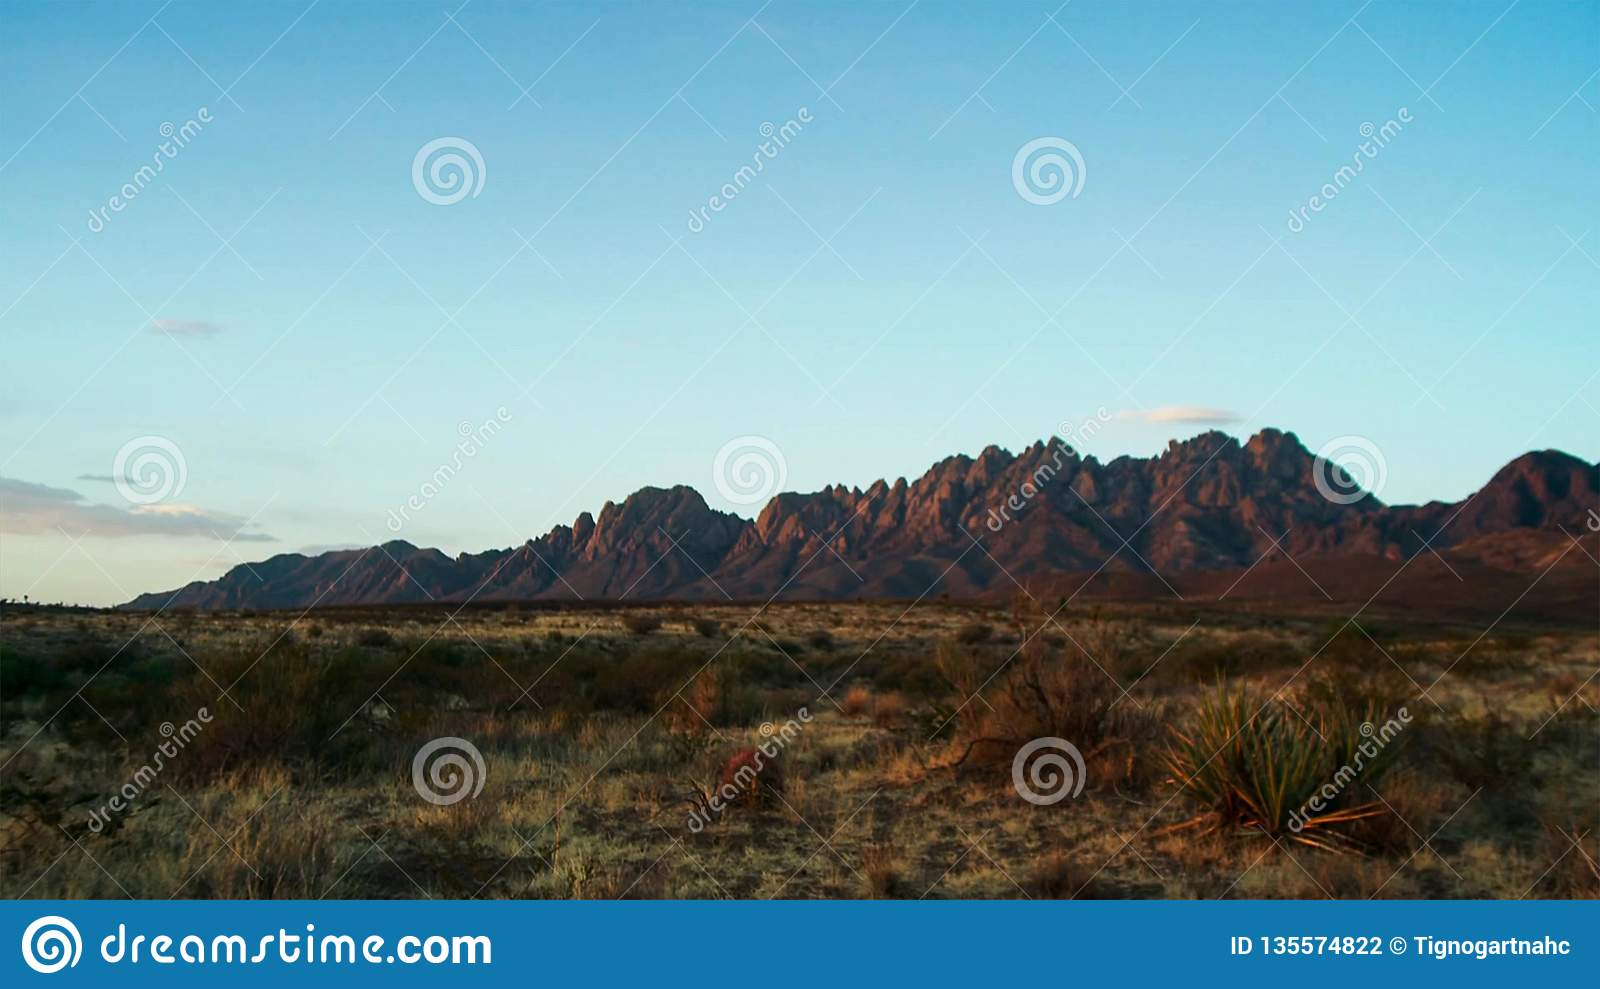 Saguaros at Sunset in front of Superstition Mountains. Sonoran Desert near Phoenix